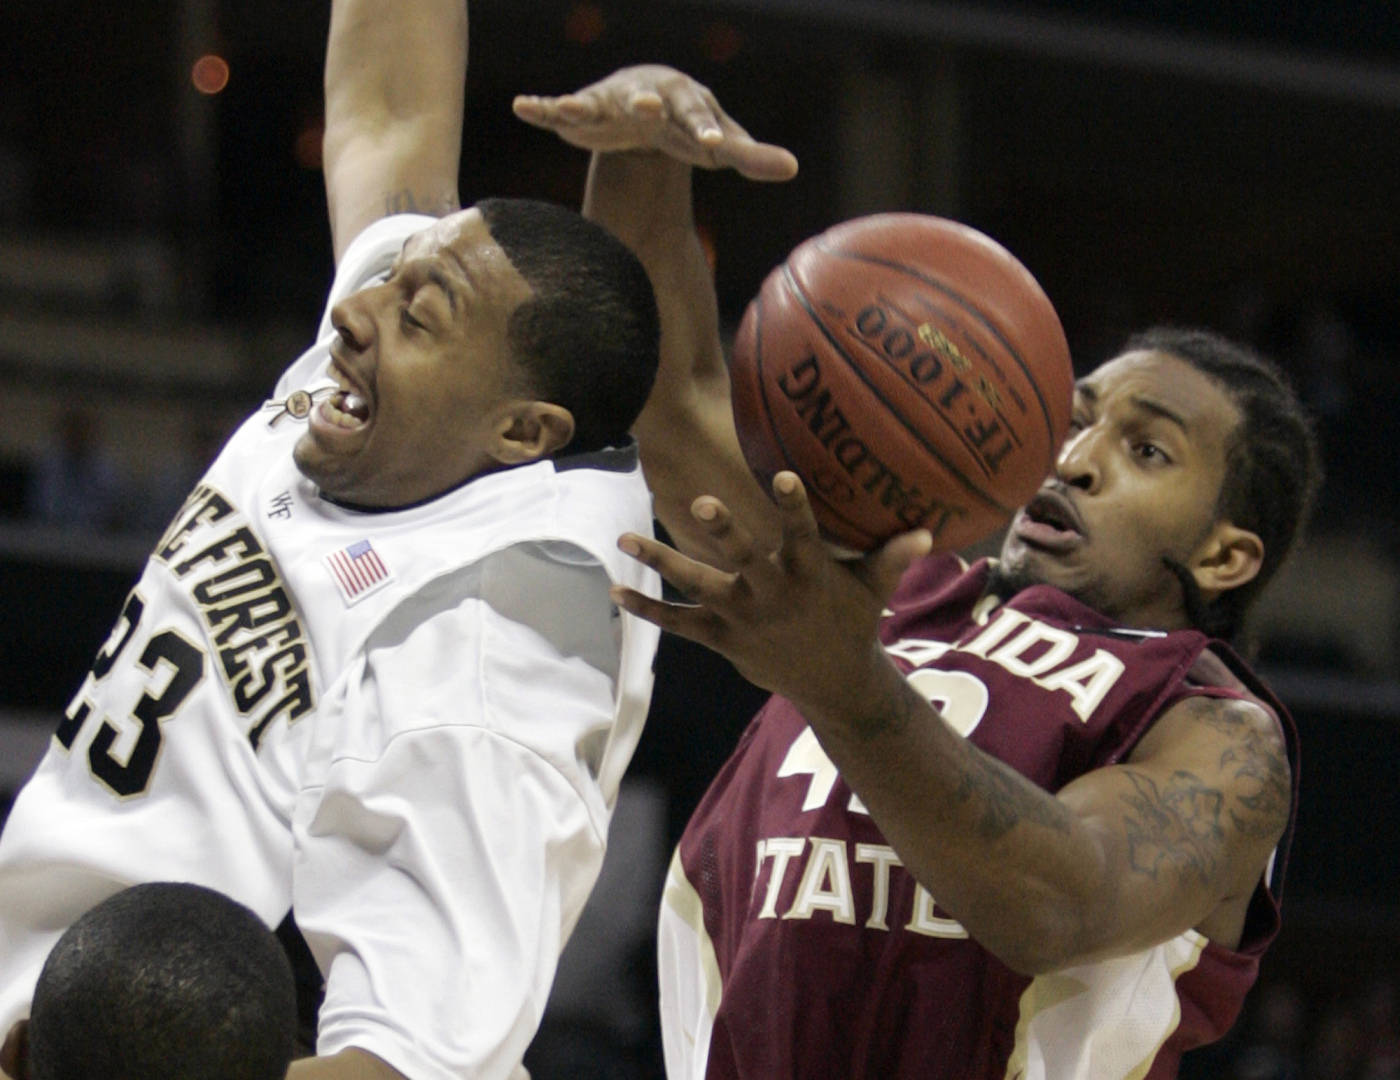 Ryan Reid pulls in a rebound over Wake Forest's James Johnson in the second half. (AP Photo/Steve Helber)